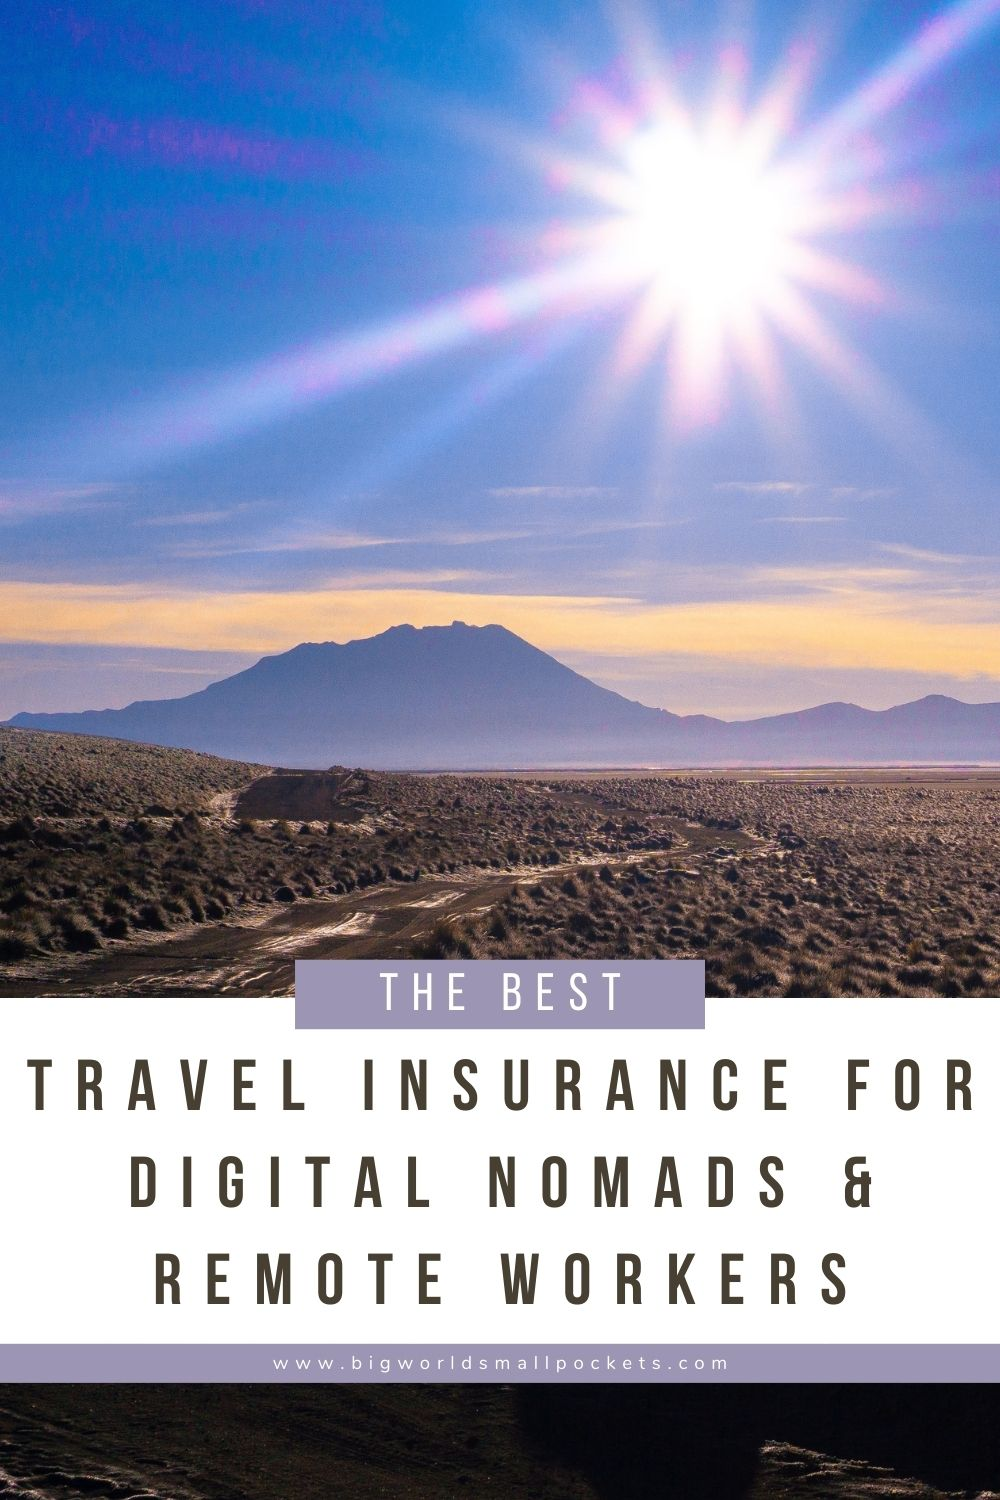 The Best Travel Insurance for Digital Nomads and Remote Workers